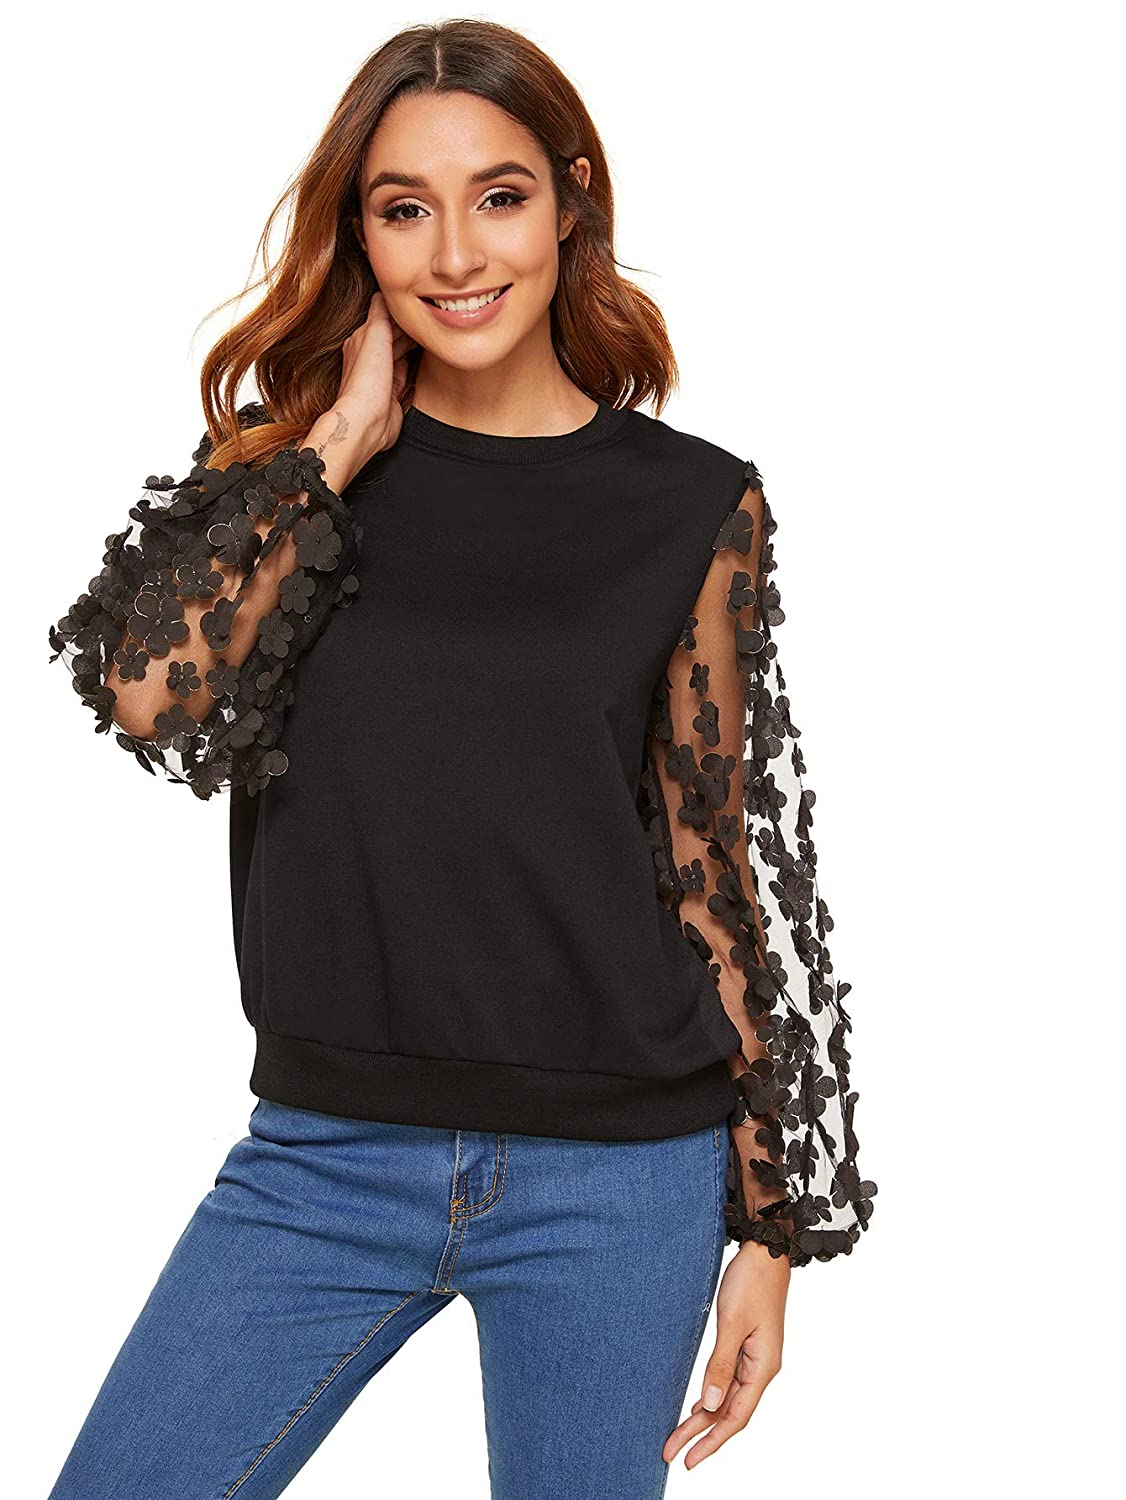 Black2 WDIRARA Women's Flower Embroidery Mesh Sleeve Top Blouse